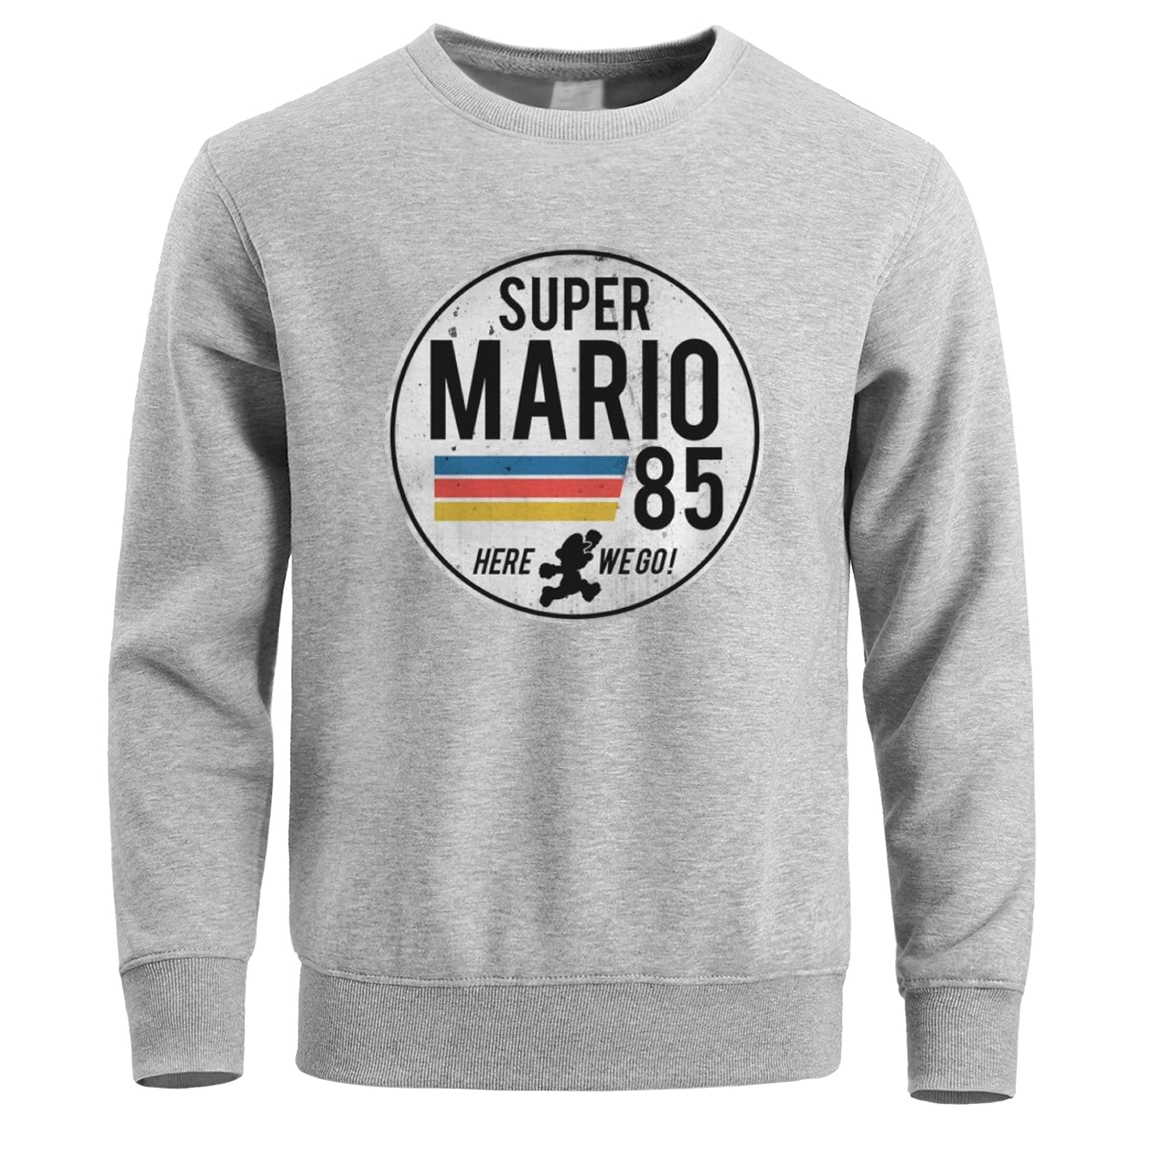 Super Mario 85 Sweatshirt Men Crewneck Hoodies Sweatshirts Winter Fleece Warm Mens Pullover Hoodie Black White Streetwear Hoody